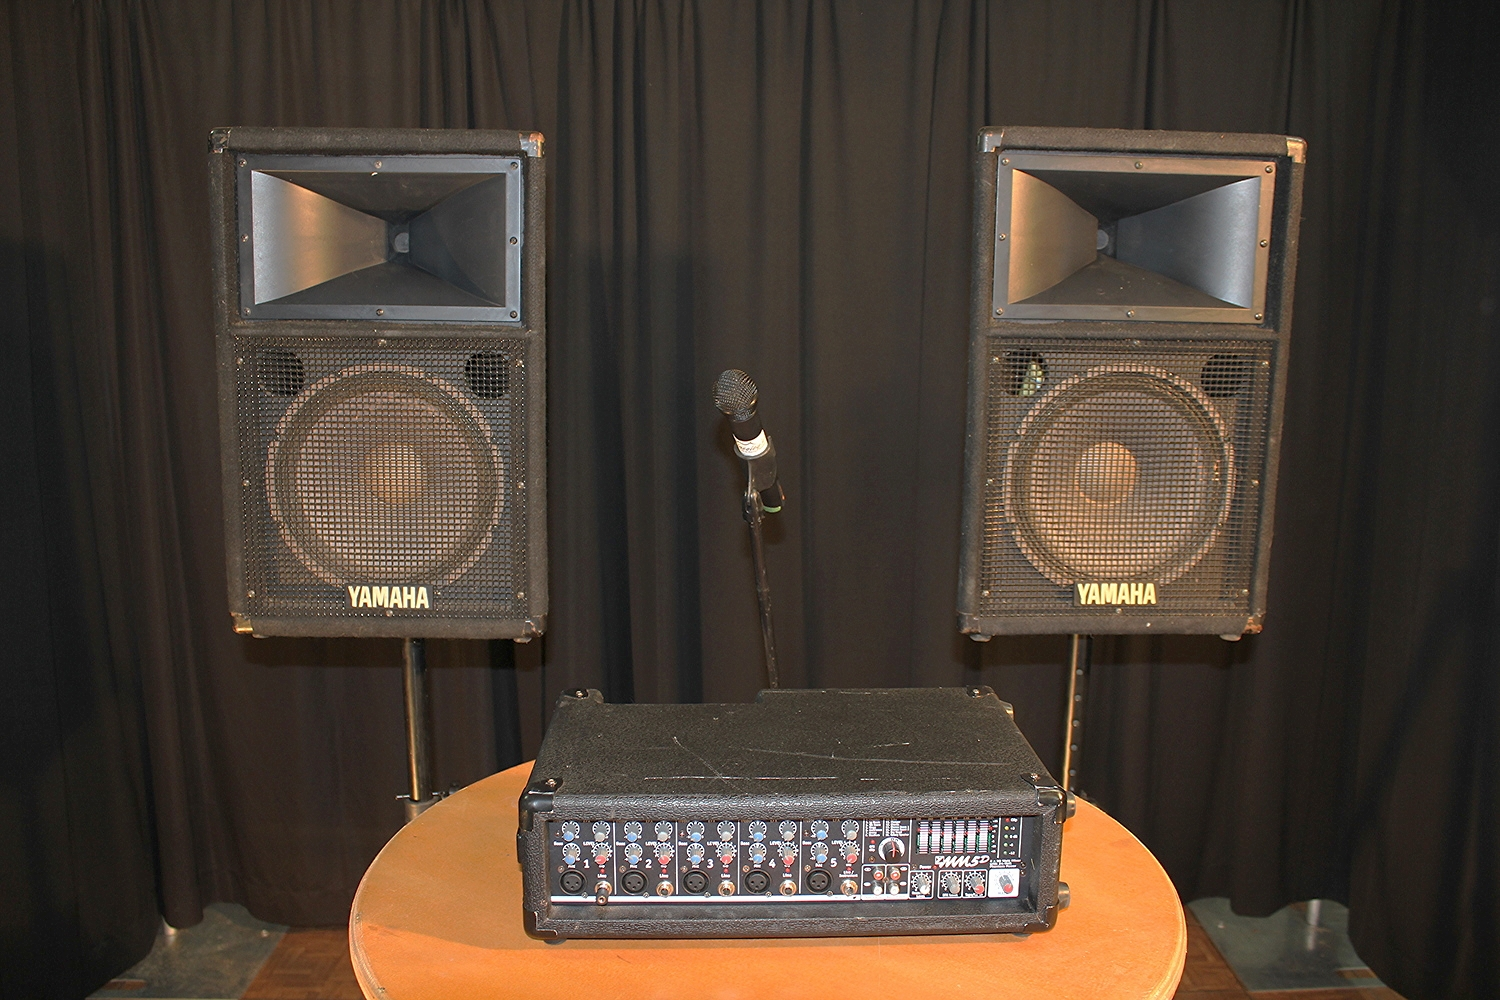 Sound Systems   Amplifier, two speakers with stands $ 100.00  Corded Mic with stand $ 25.00  Wireless Handheld Mic withstand $ 50.00  Wireless Clip-on or Headset Mic $ 50.00  Ipod Cable $ 5.00